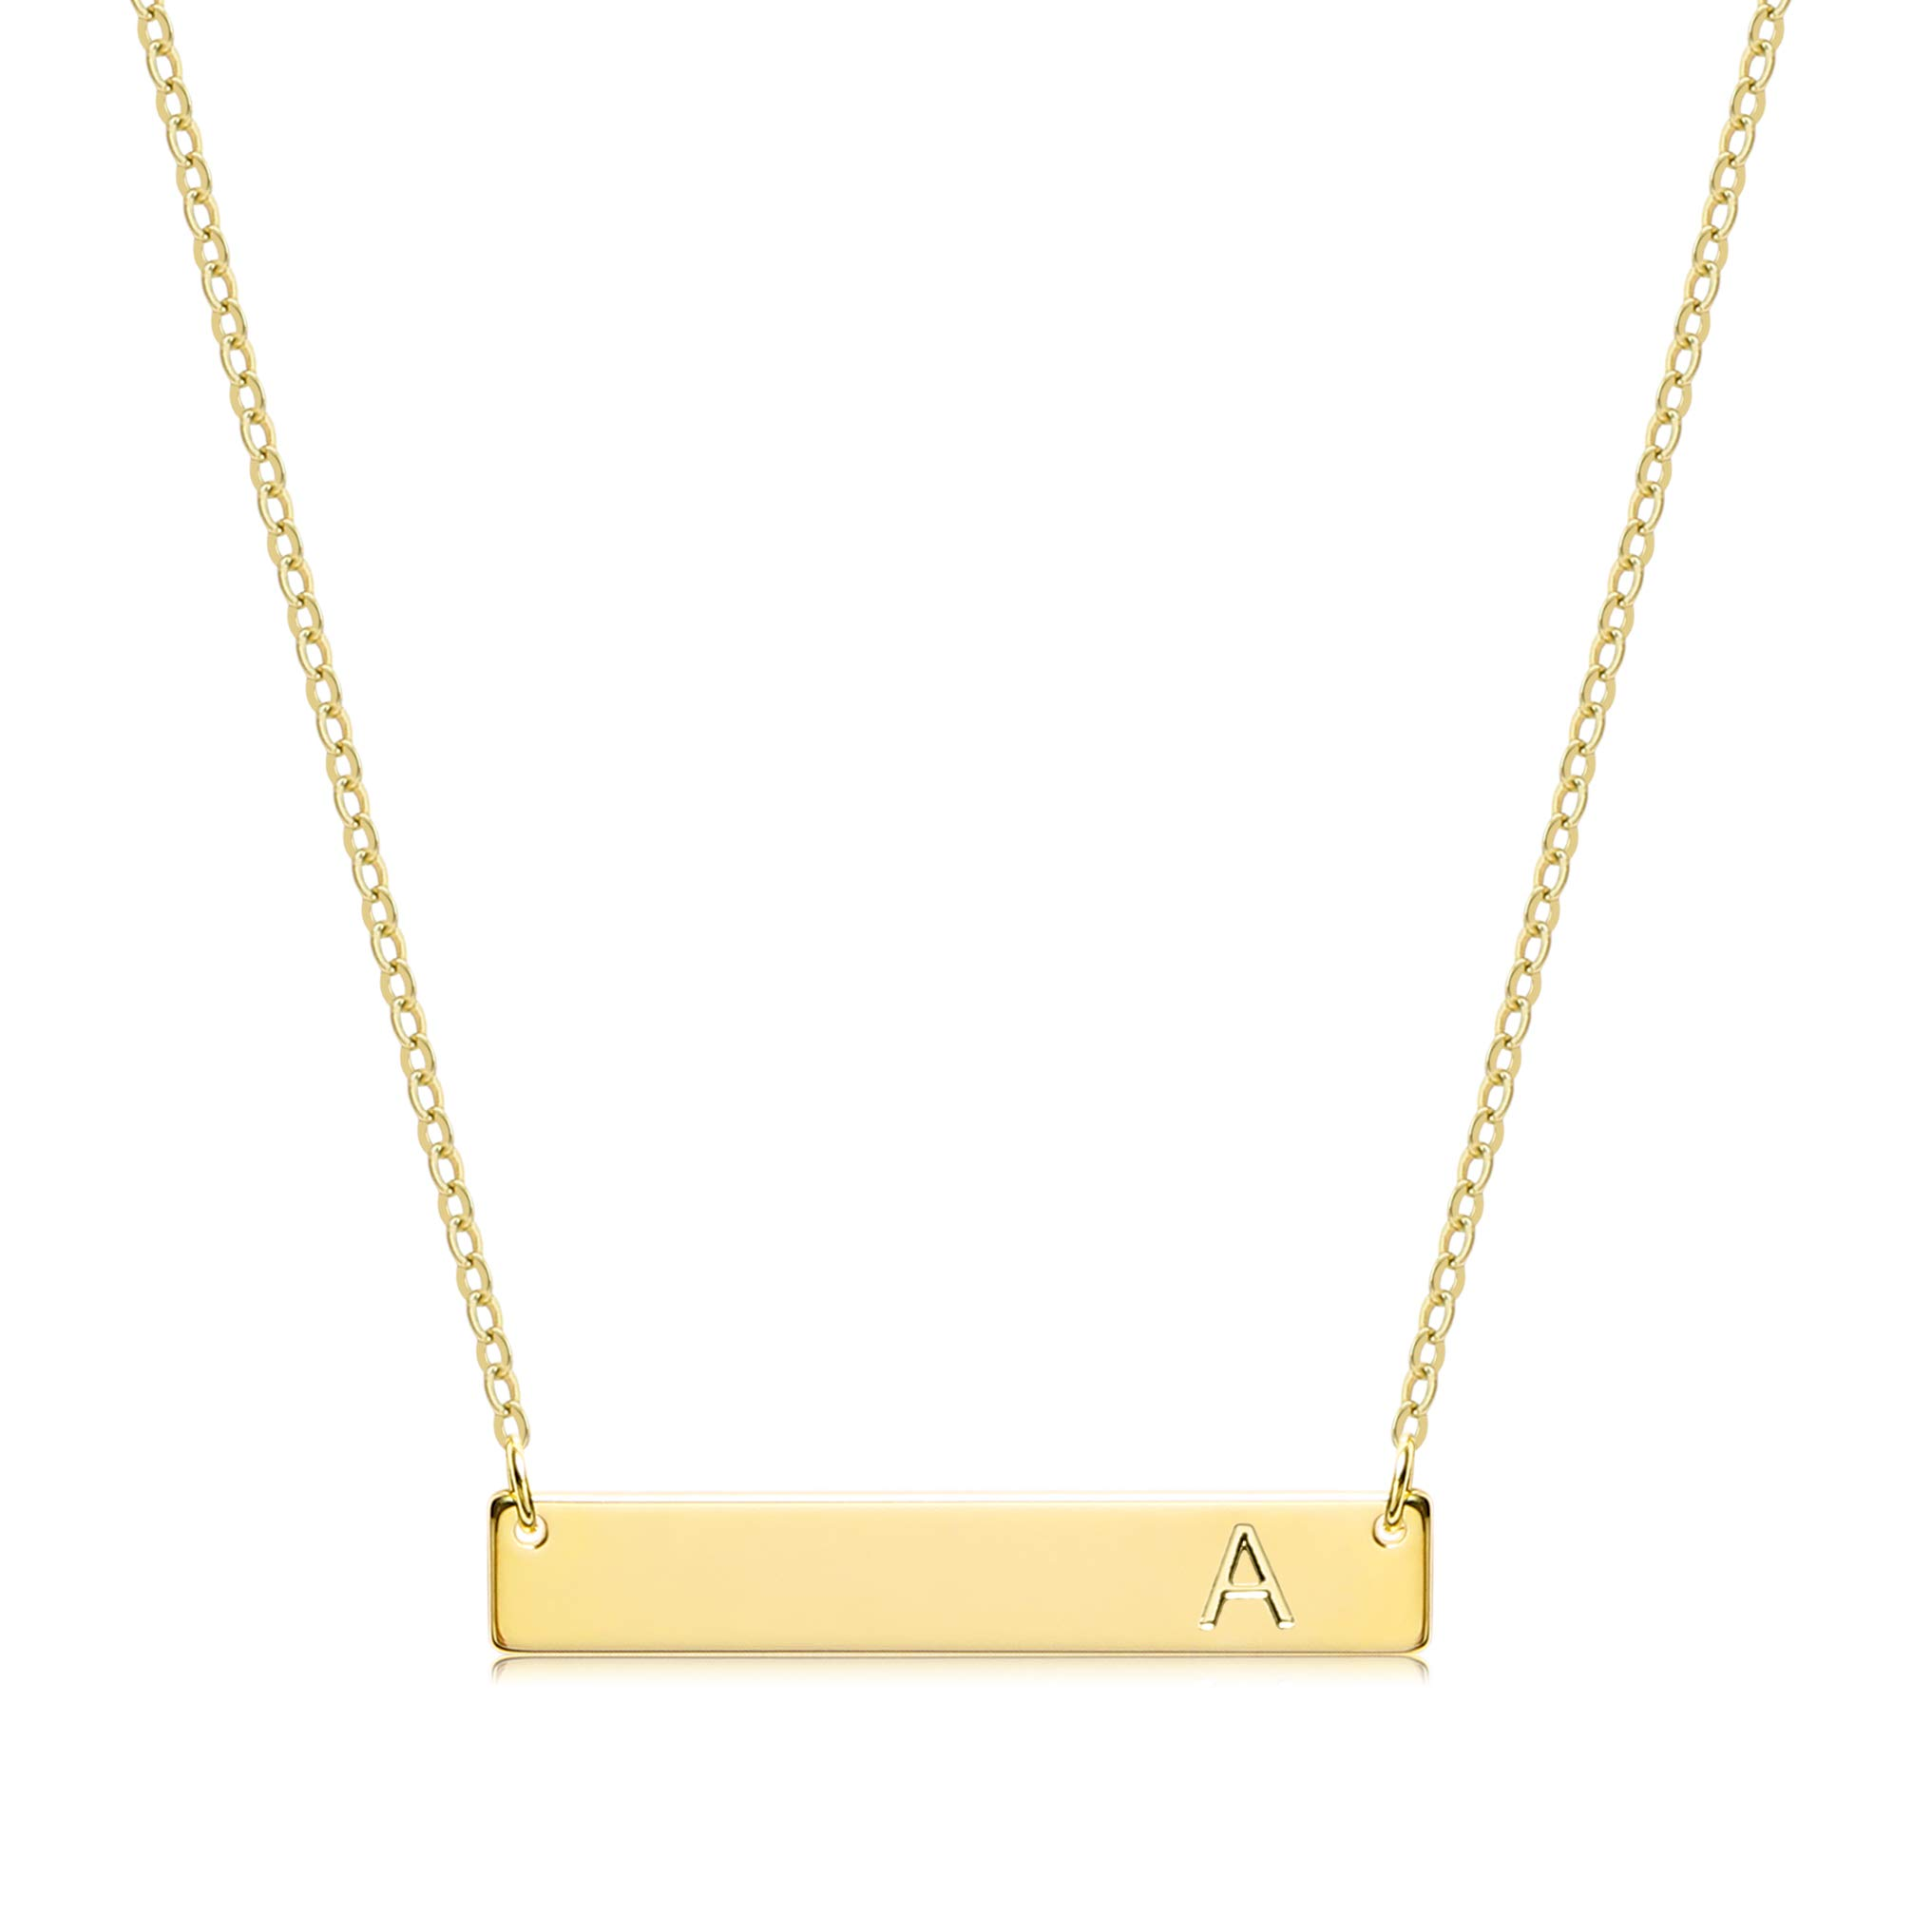 S.J JEWELRY Alphabet 26 A-Z Letter Initial Necklace 14k Gold-Plated Bar Necklace Engraved Name Necklace Personalized Letter Monogram Pendant Necklace for Women Girls